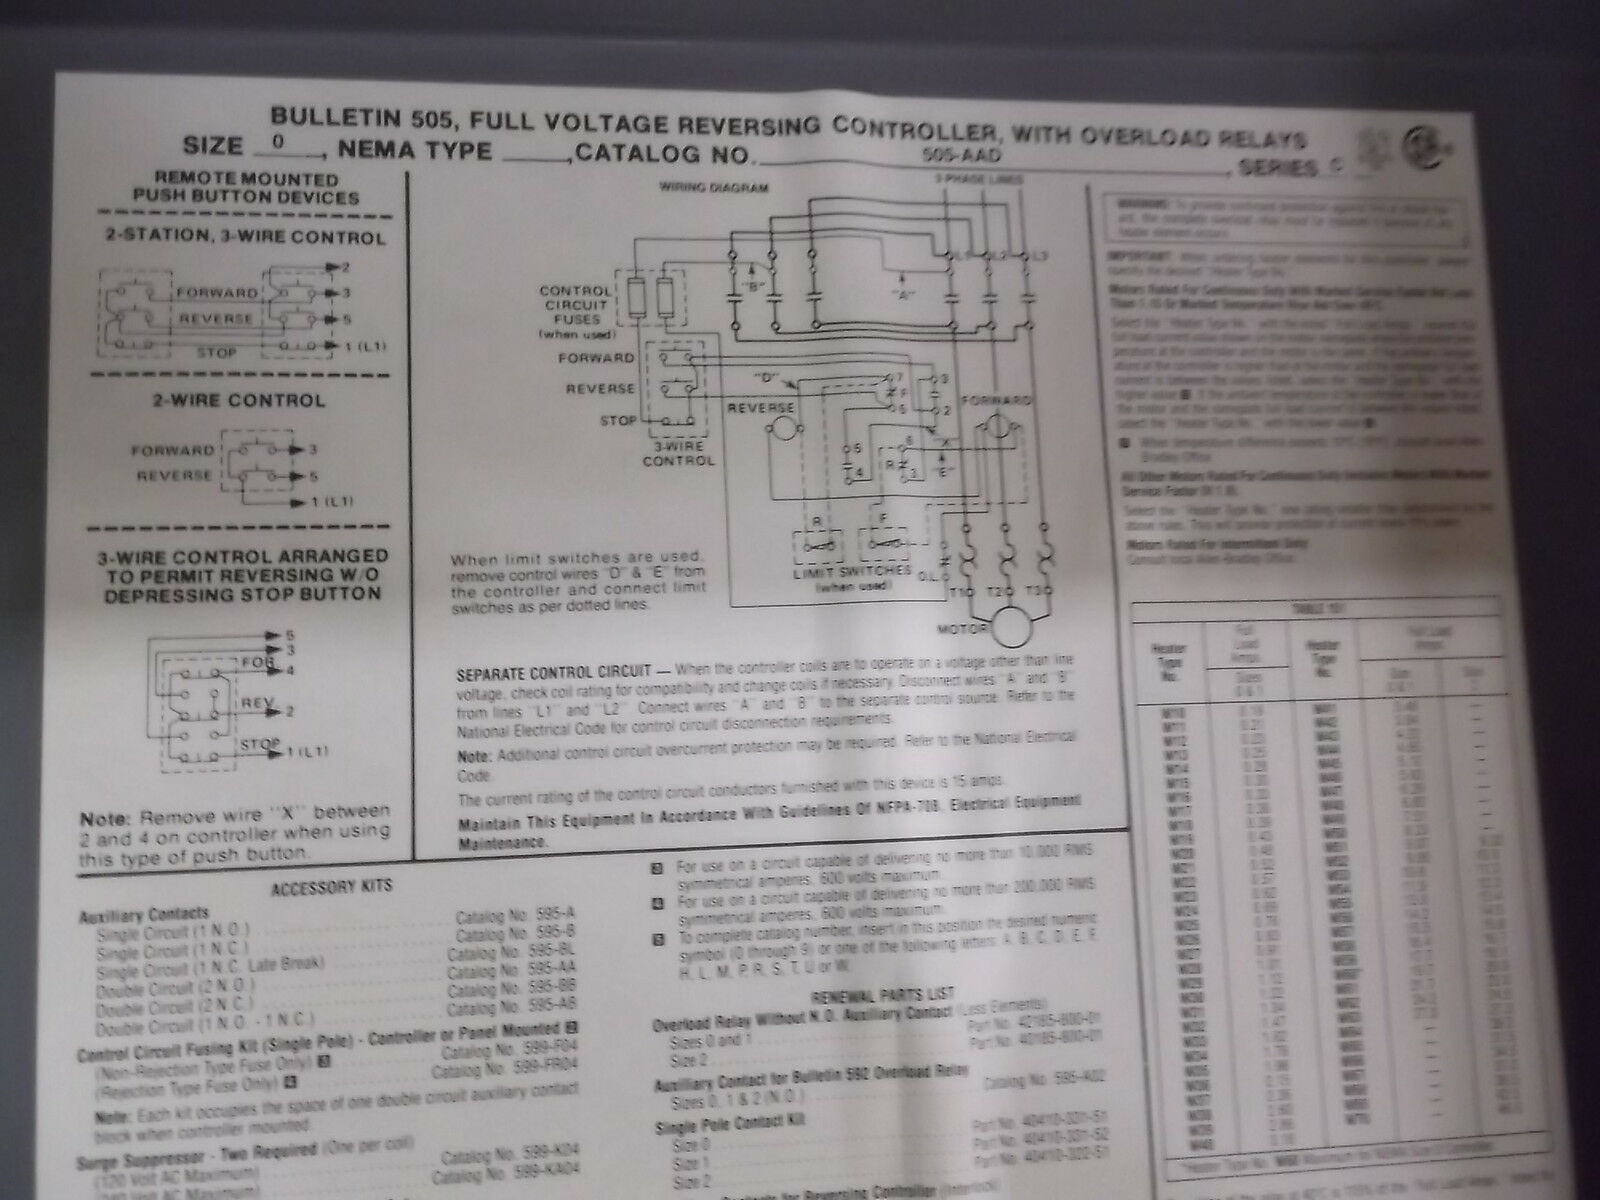 Allen Bradley 505 Aad Series C Full Voltage Reversing Controller W Start Stop Station Wiring Diagram Parallel Pre Owned Lowest Price